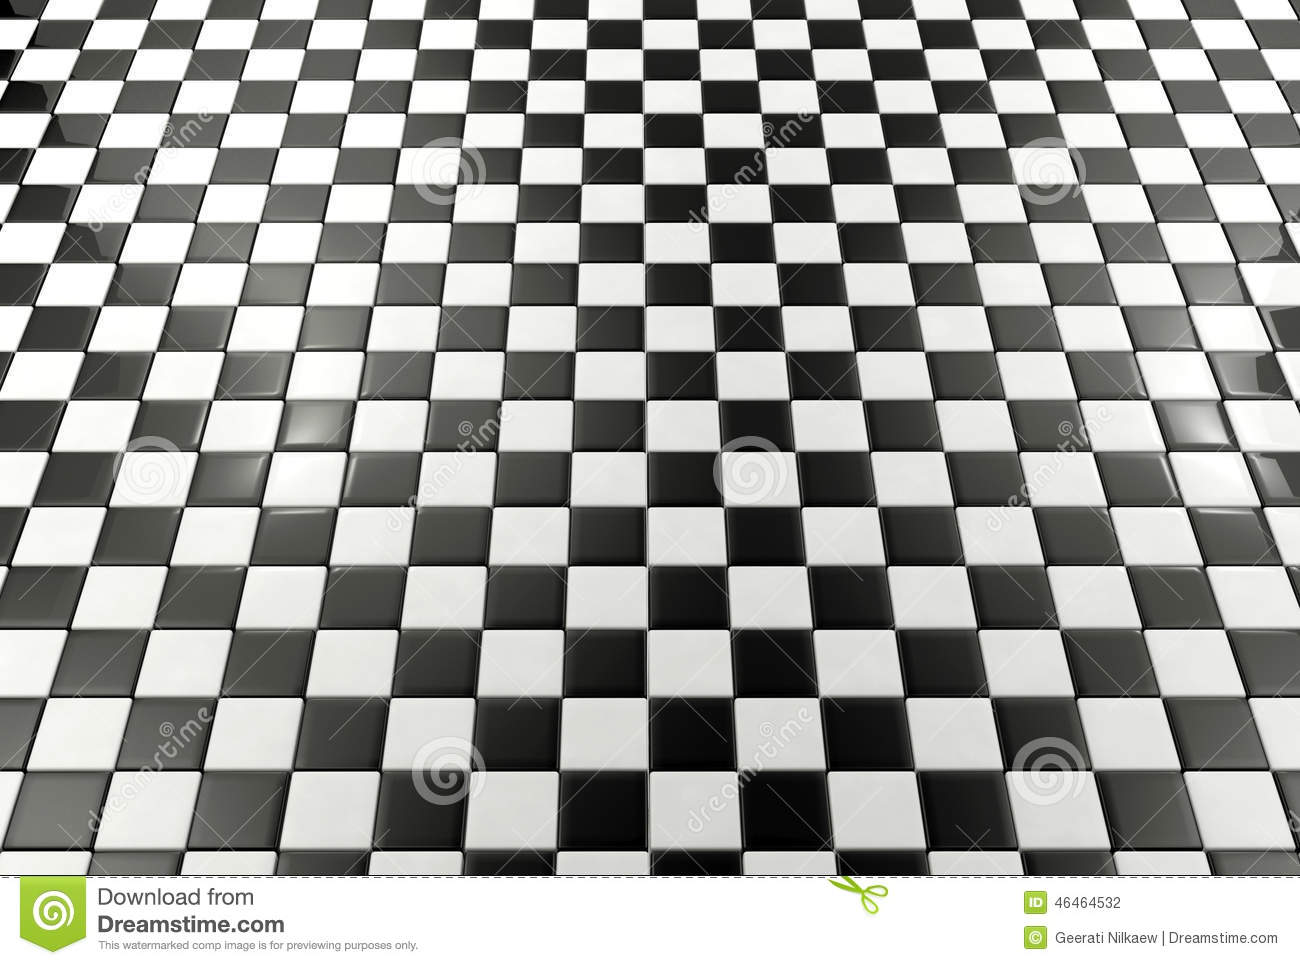 Tiles clipart flooring Tile And  Tile Rugmosaic